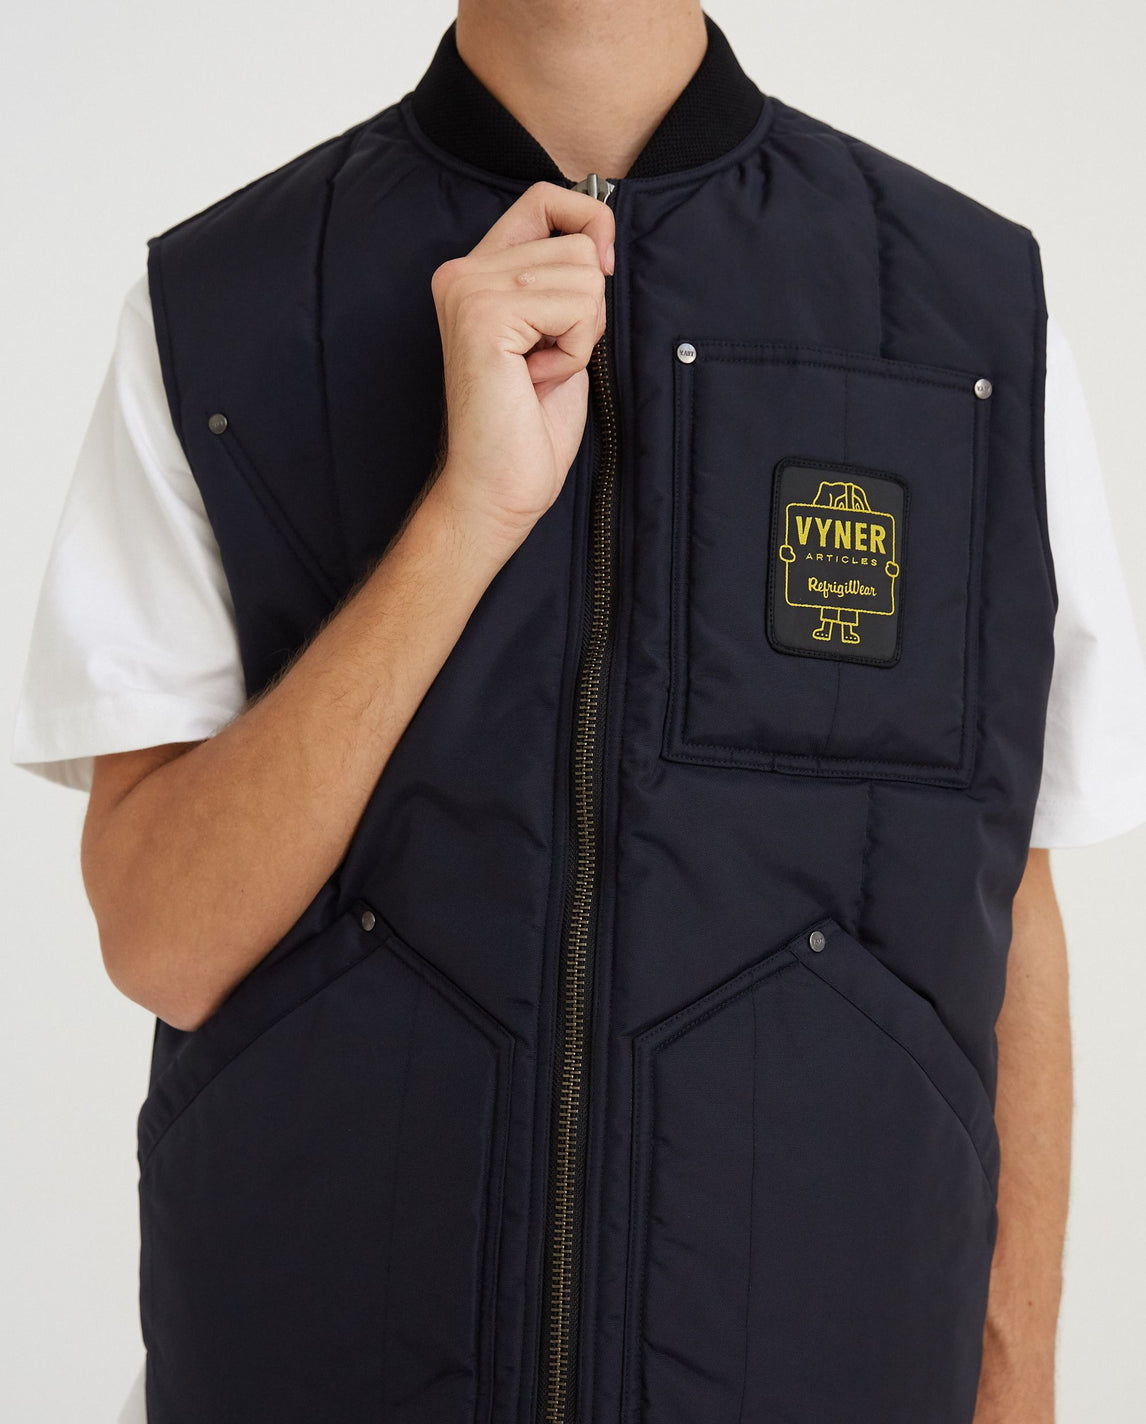 RF Gilet - Navy MENS VYNER ARTICLES